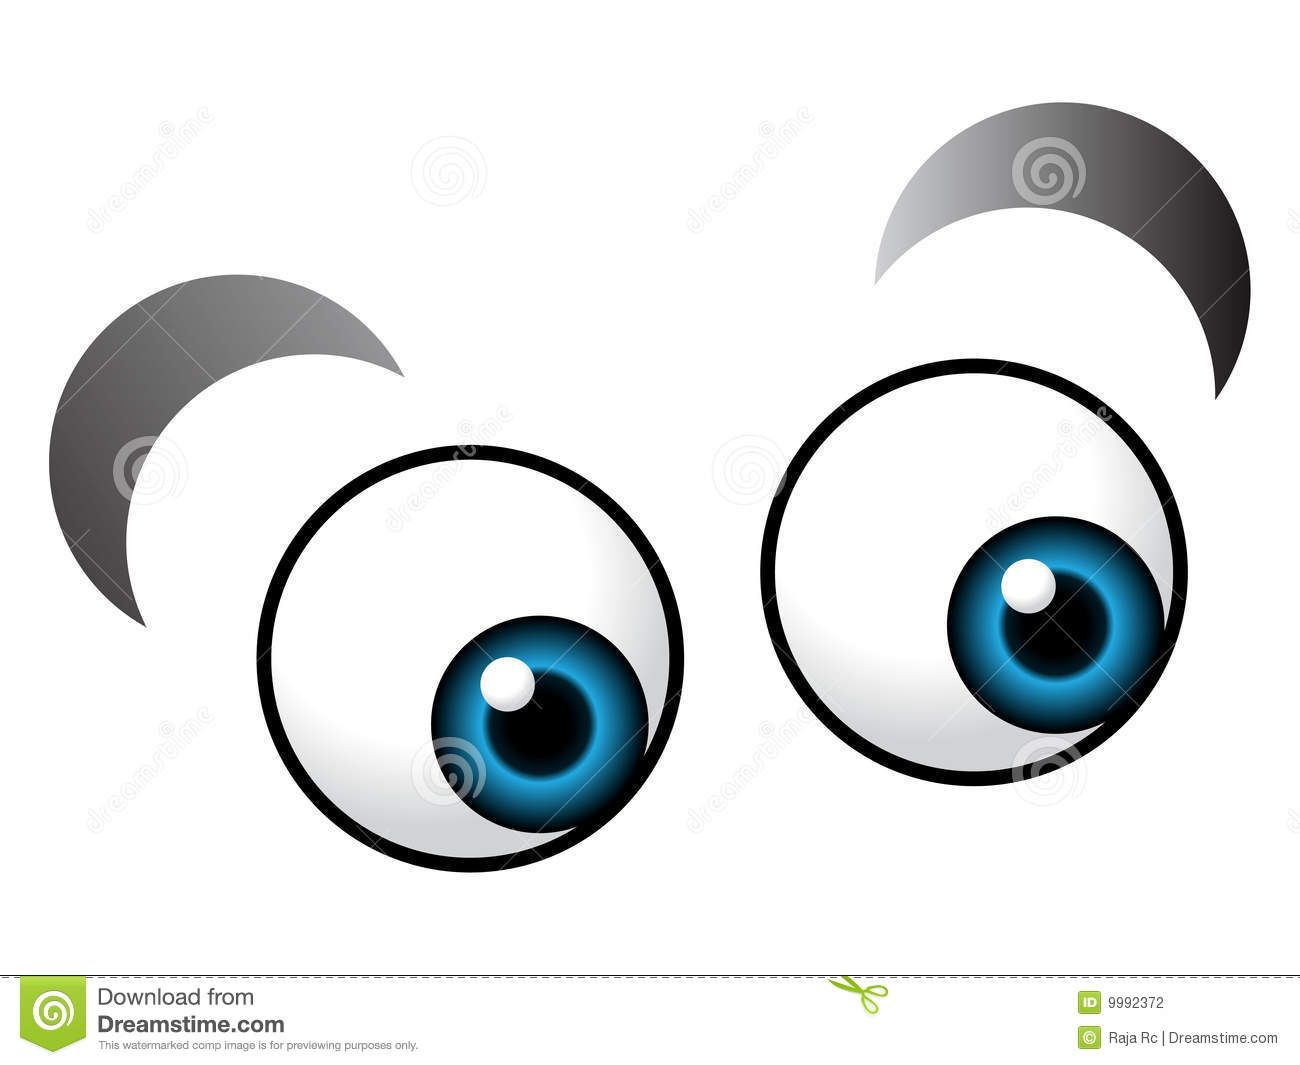 Cartoon Eye Download From Over 48 Million High Quality Stock Photos Images Vectors Sign Up For Free Today Im Cartoon Eyes Stock Illustration Illustration